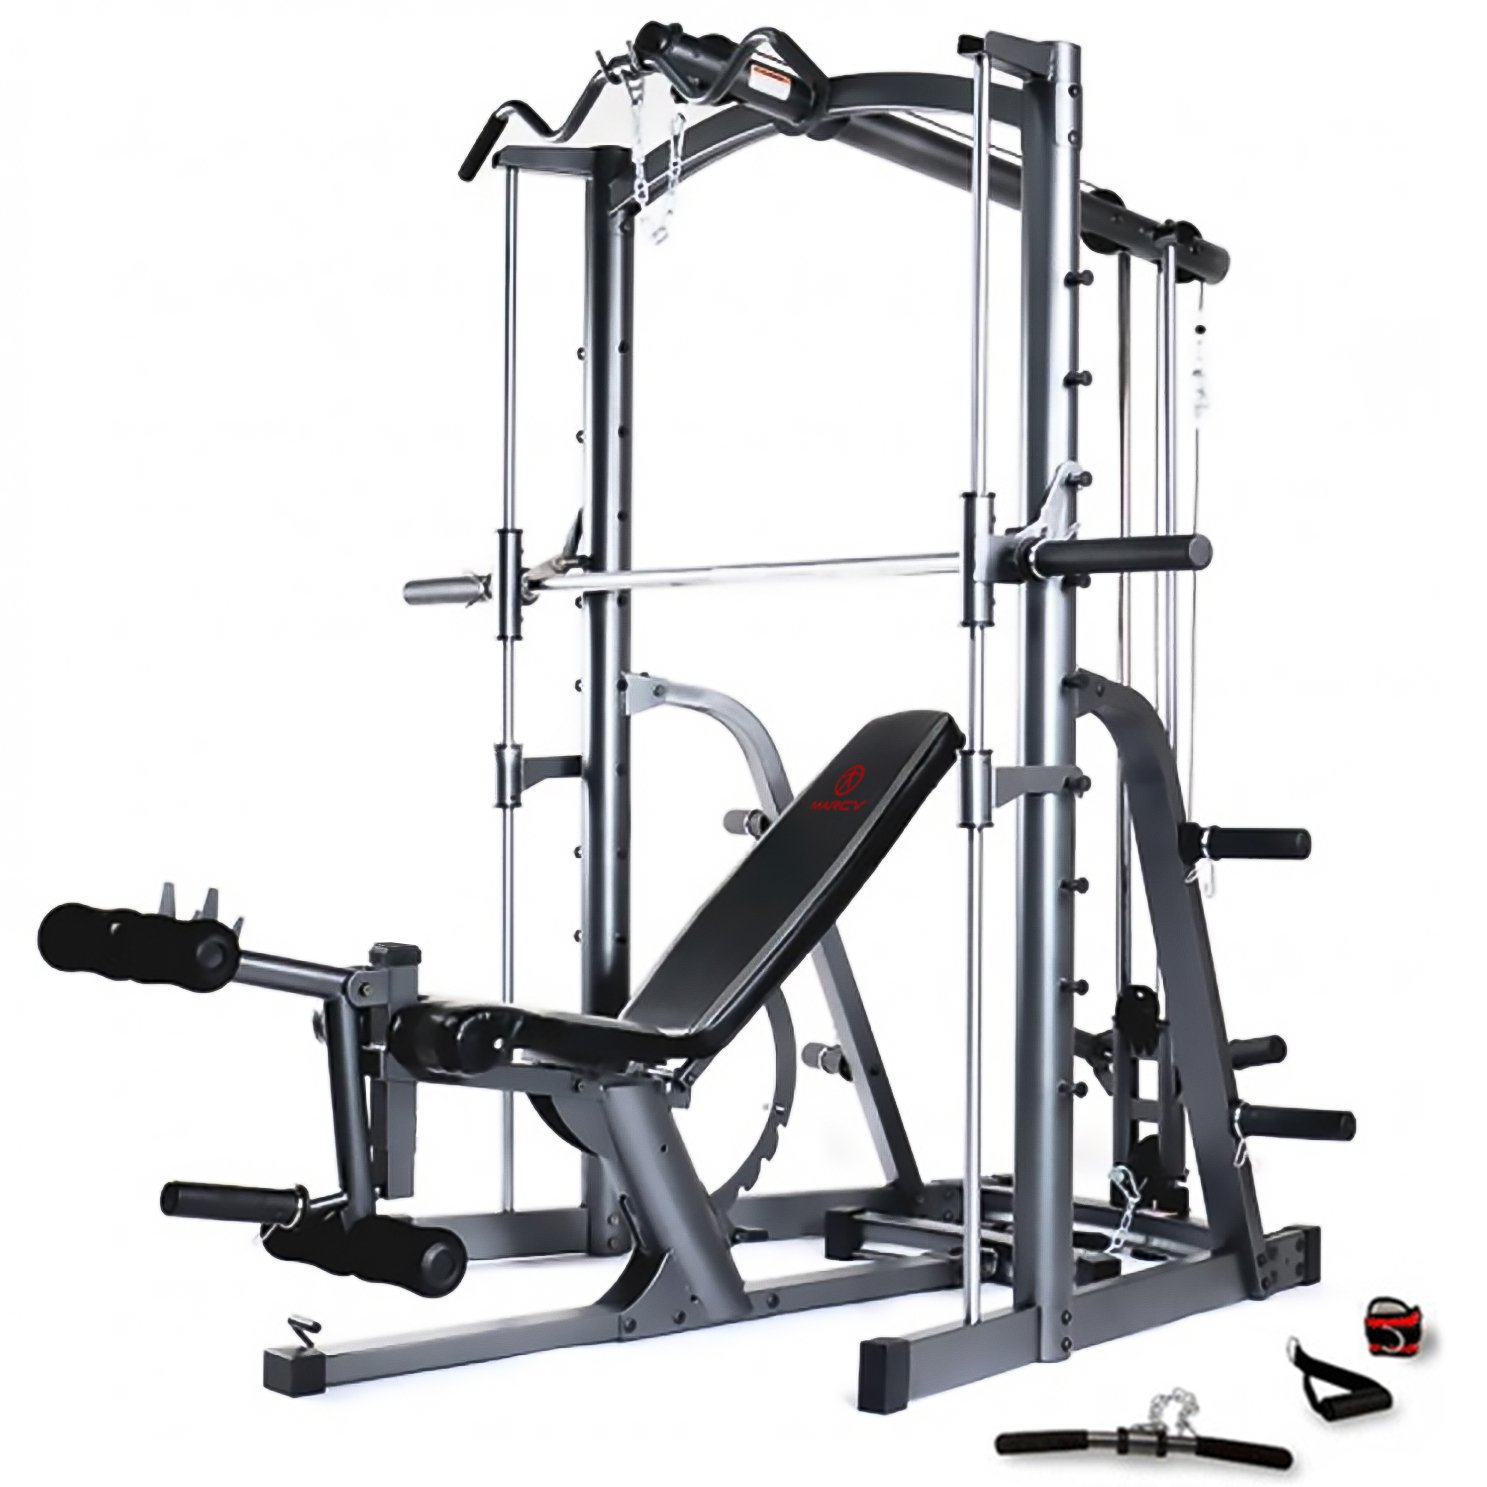 weight reviews bench gold gym xr product com bar s olympic walmart